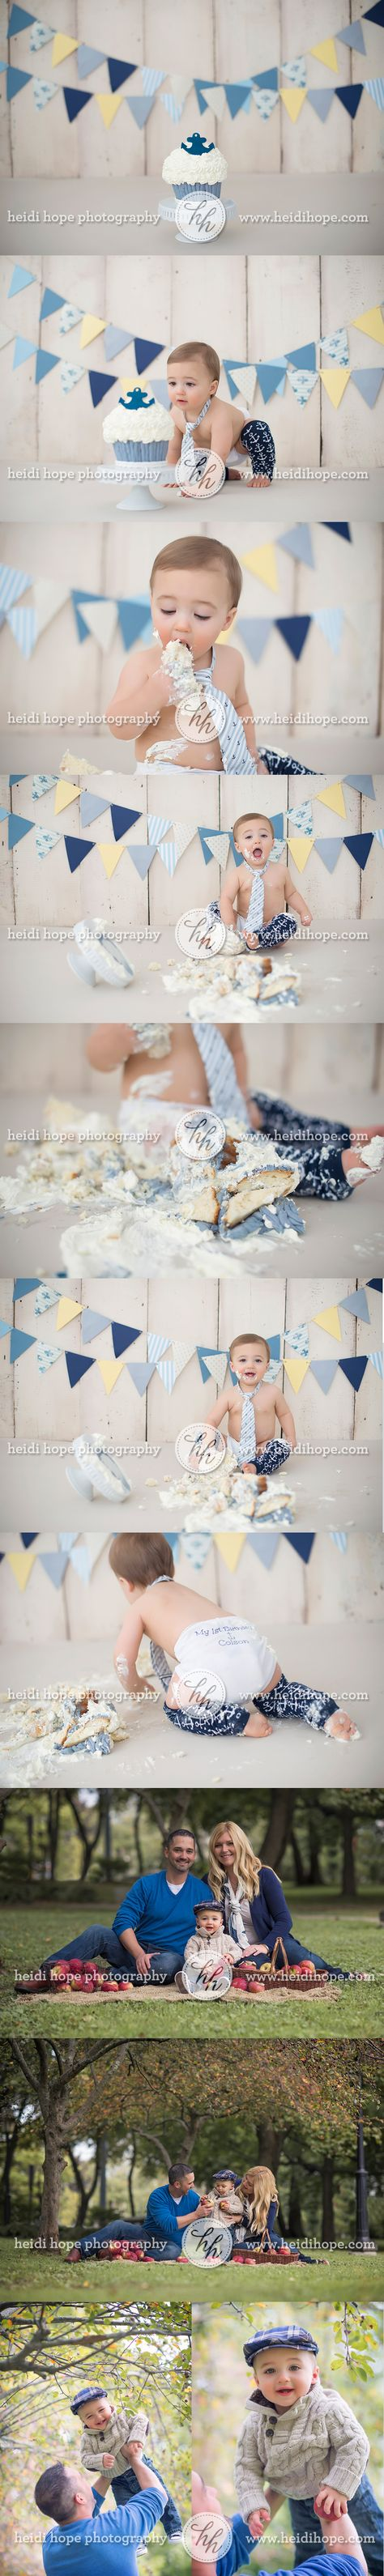 nautical first birthday cake smash and outdoor applepicking session